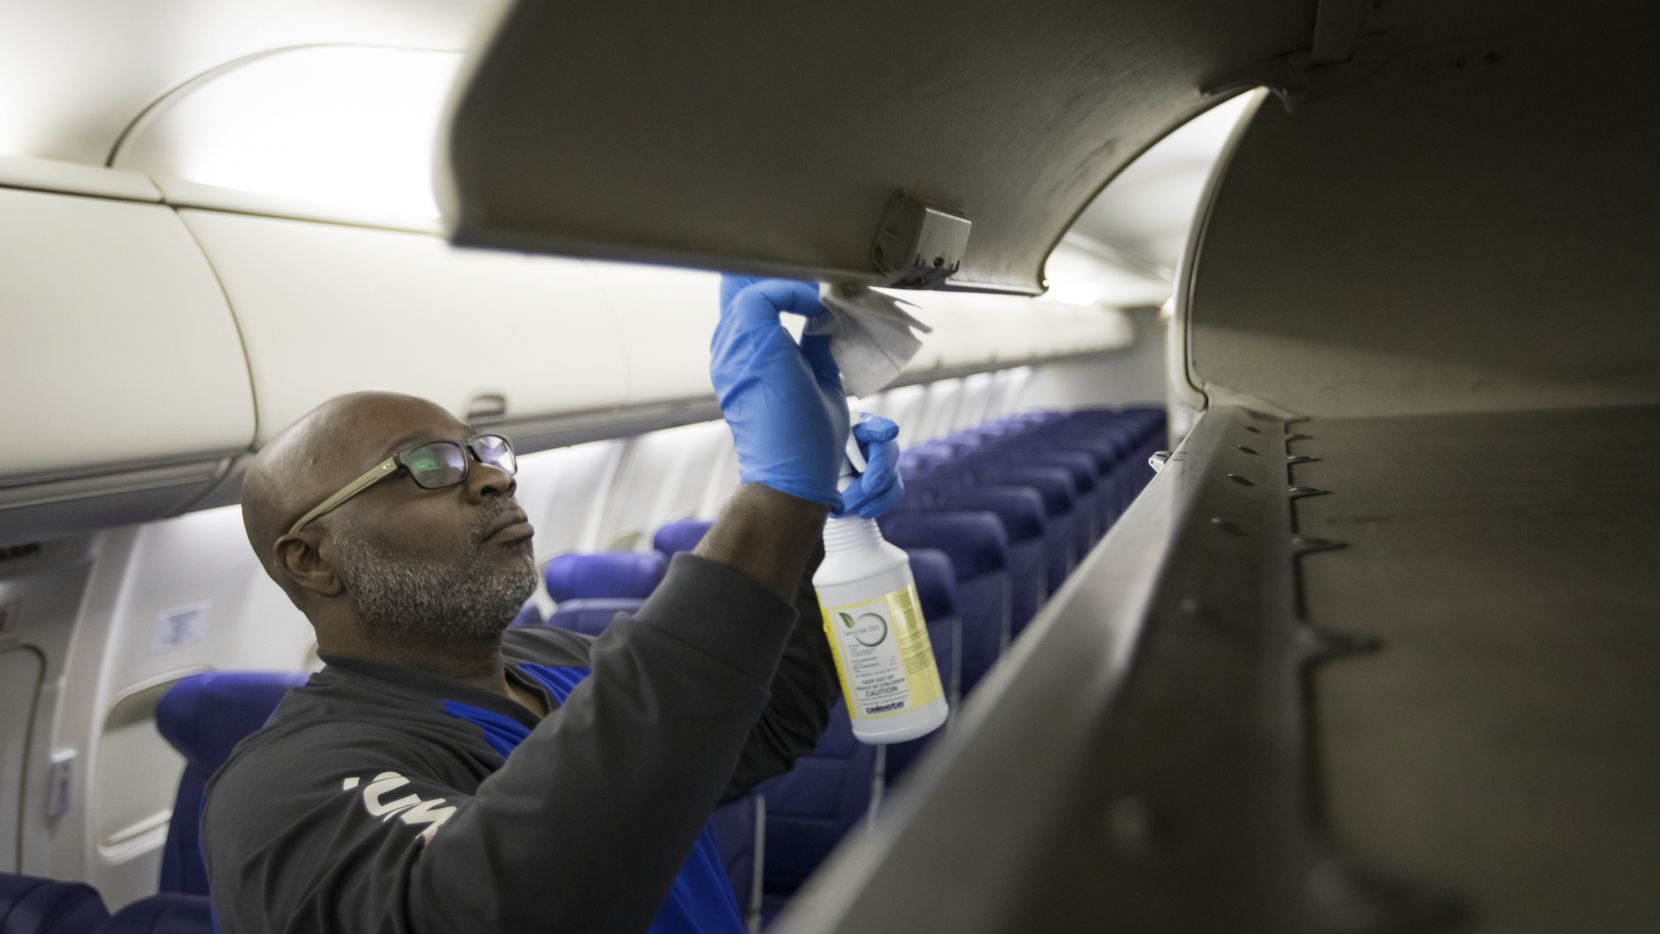 A Southwest Airlines employee cleans a plane as the airline steps up hygiene measures to protect passengers and crew members from COVID-19.